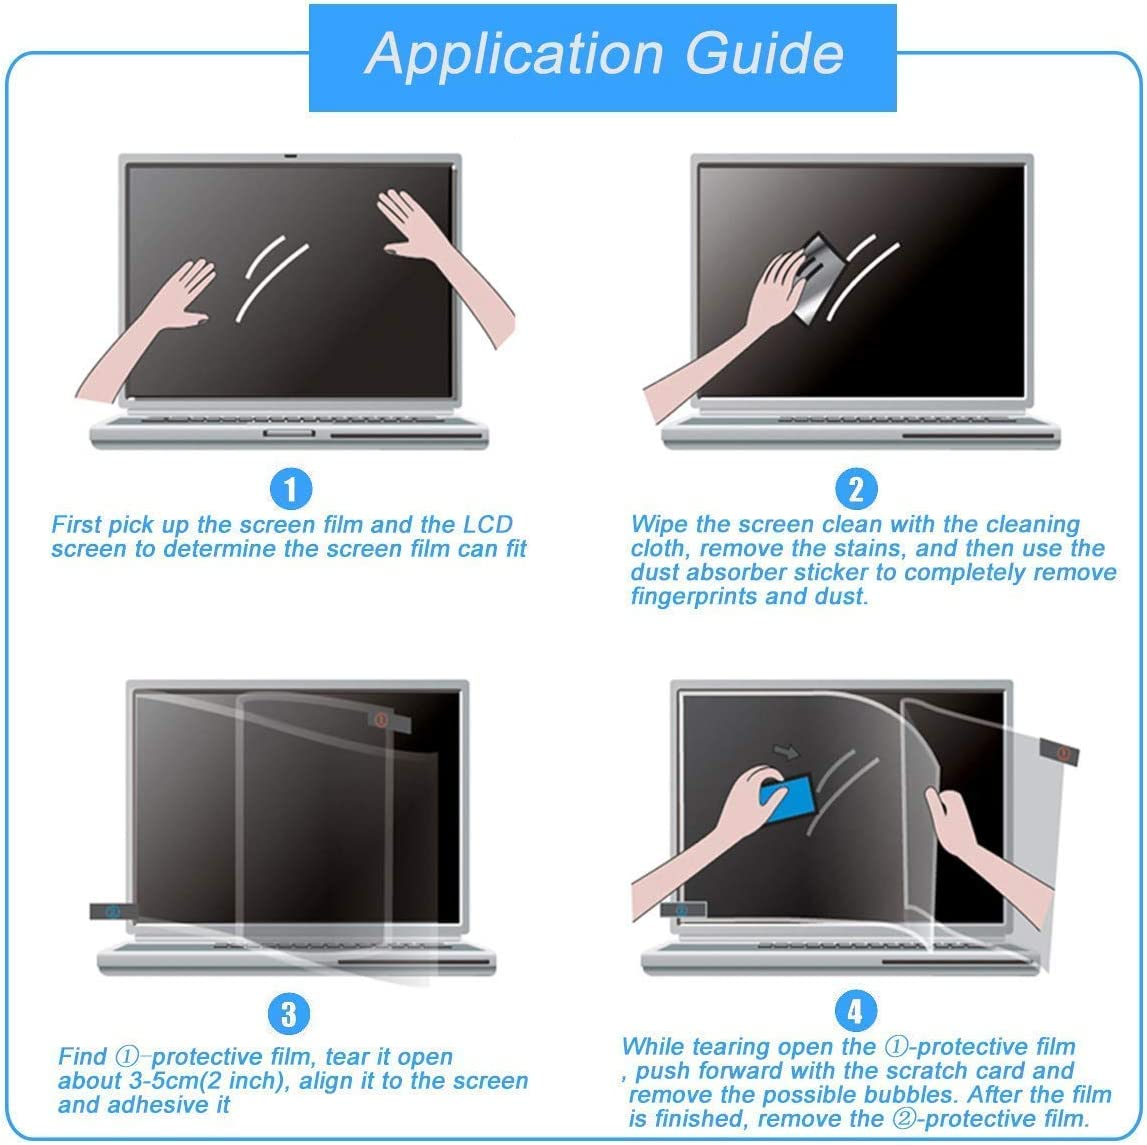 MUBUY 23 Inch Anti Glare Screen Protector Fit Diagonal 23 Inch Desktop with 16:9 Widescreen Monitor, Reduce Glare Reflection and Eyes Strain, Fingerprint-Resist (20 1/16 x 11 5/16 Inch)-3Pcs